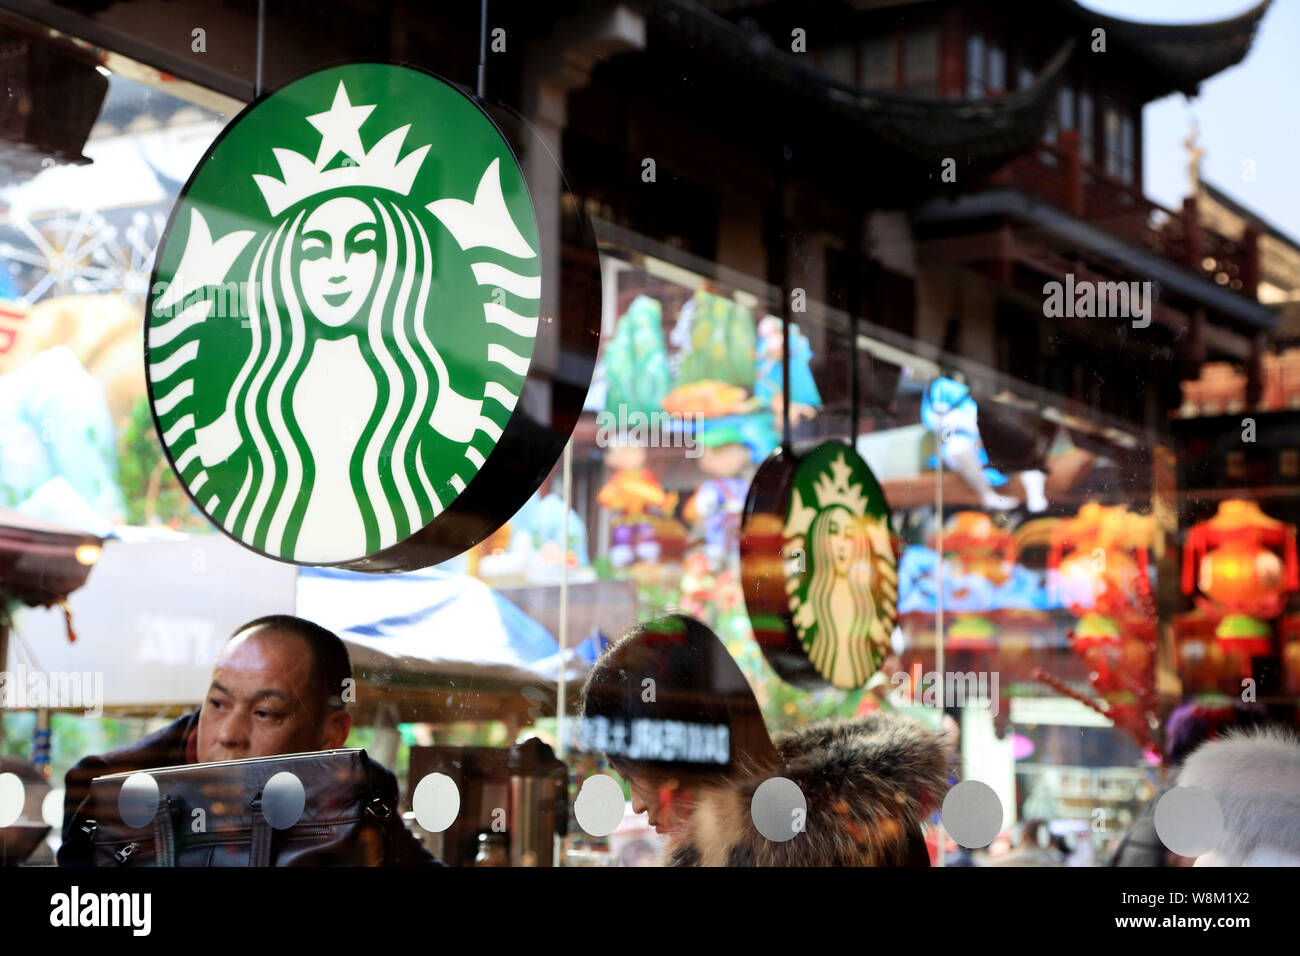 File Chinese Customers Enjoy Coffee In The Cafe Of Starbucks